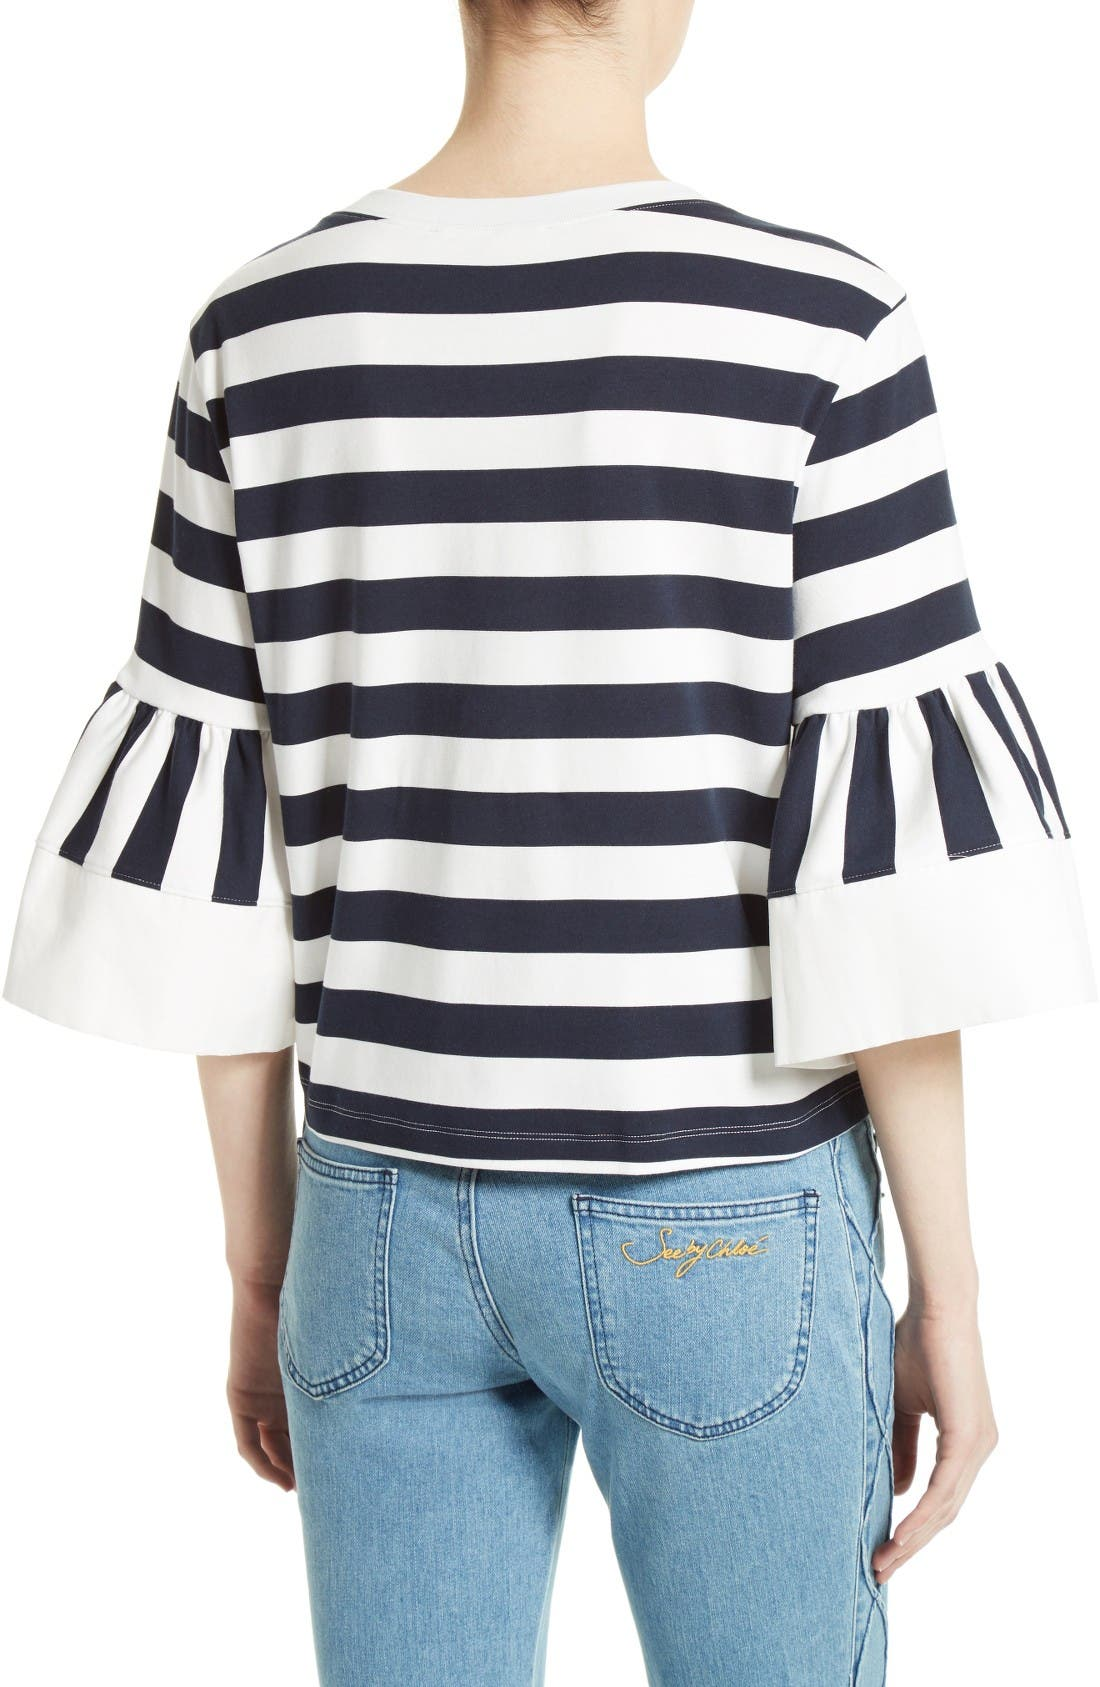 Alternate Image 3  - See by Chloé Stripe Jersey Bell Sleeve Top (Nordstrom Exclusive)